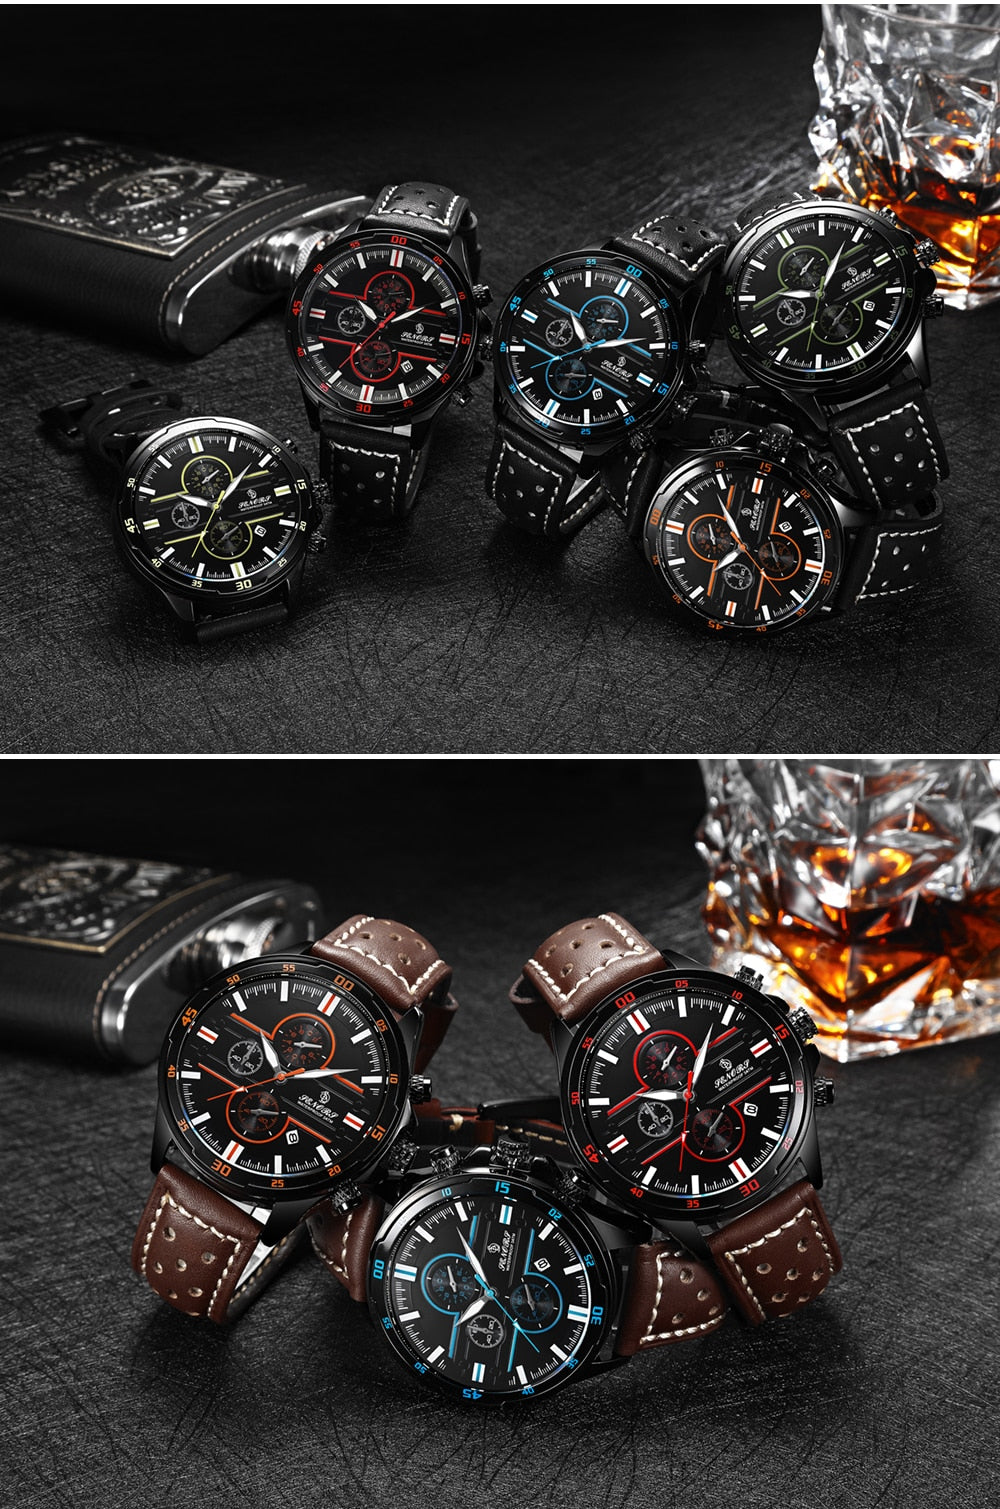 Senors Casual Sport Quartz Watches for Men Top Brand Luxury Military Black Leather WristWatch Man Clock Fashion